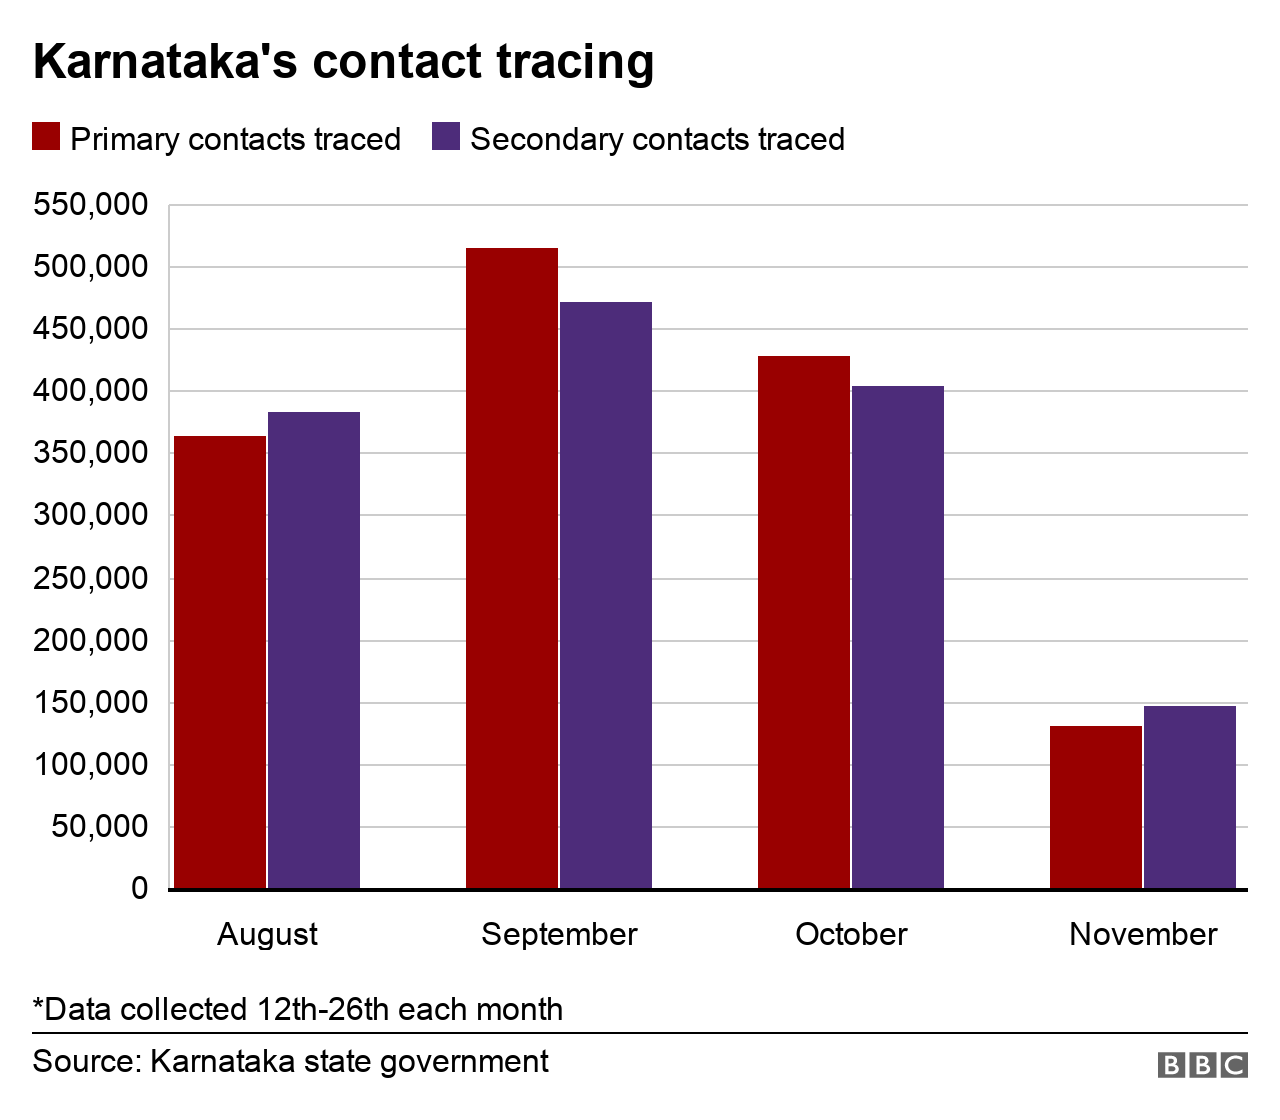 Karnataka's contact tracing data